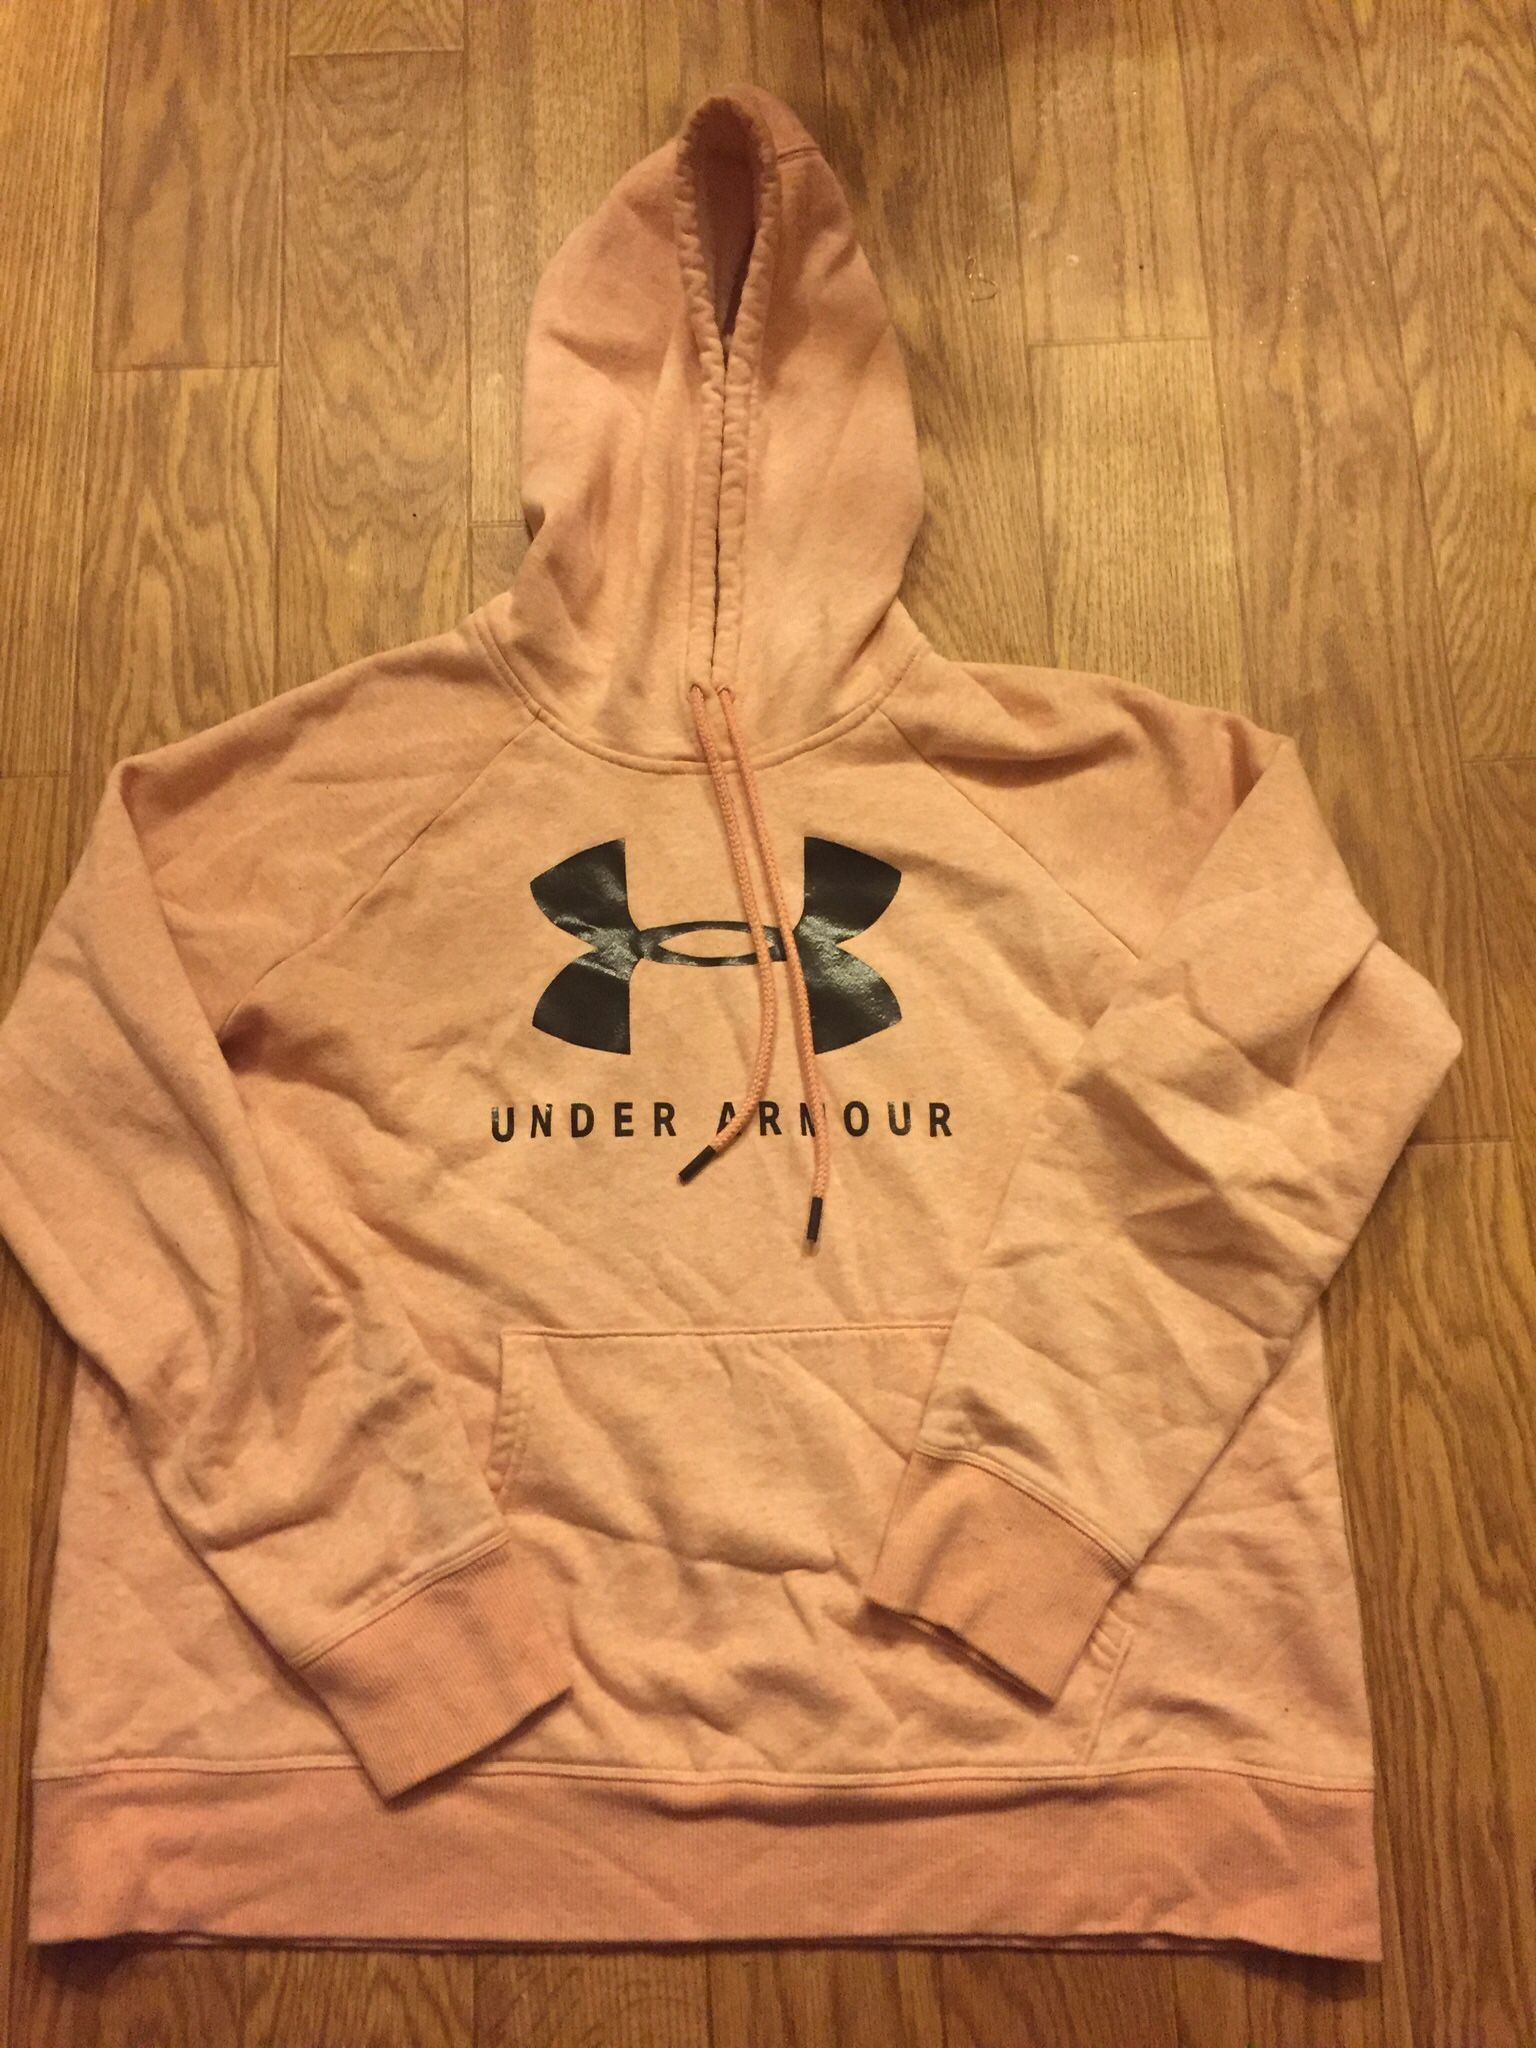 Under Armour Women's Large hoodie